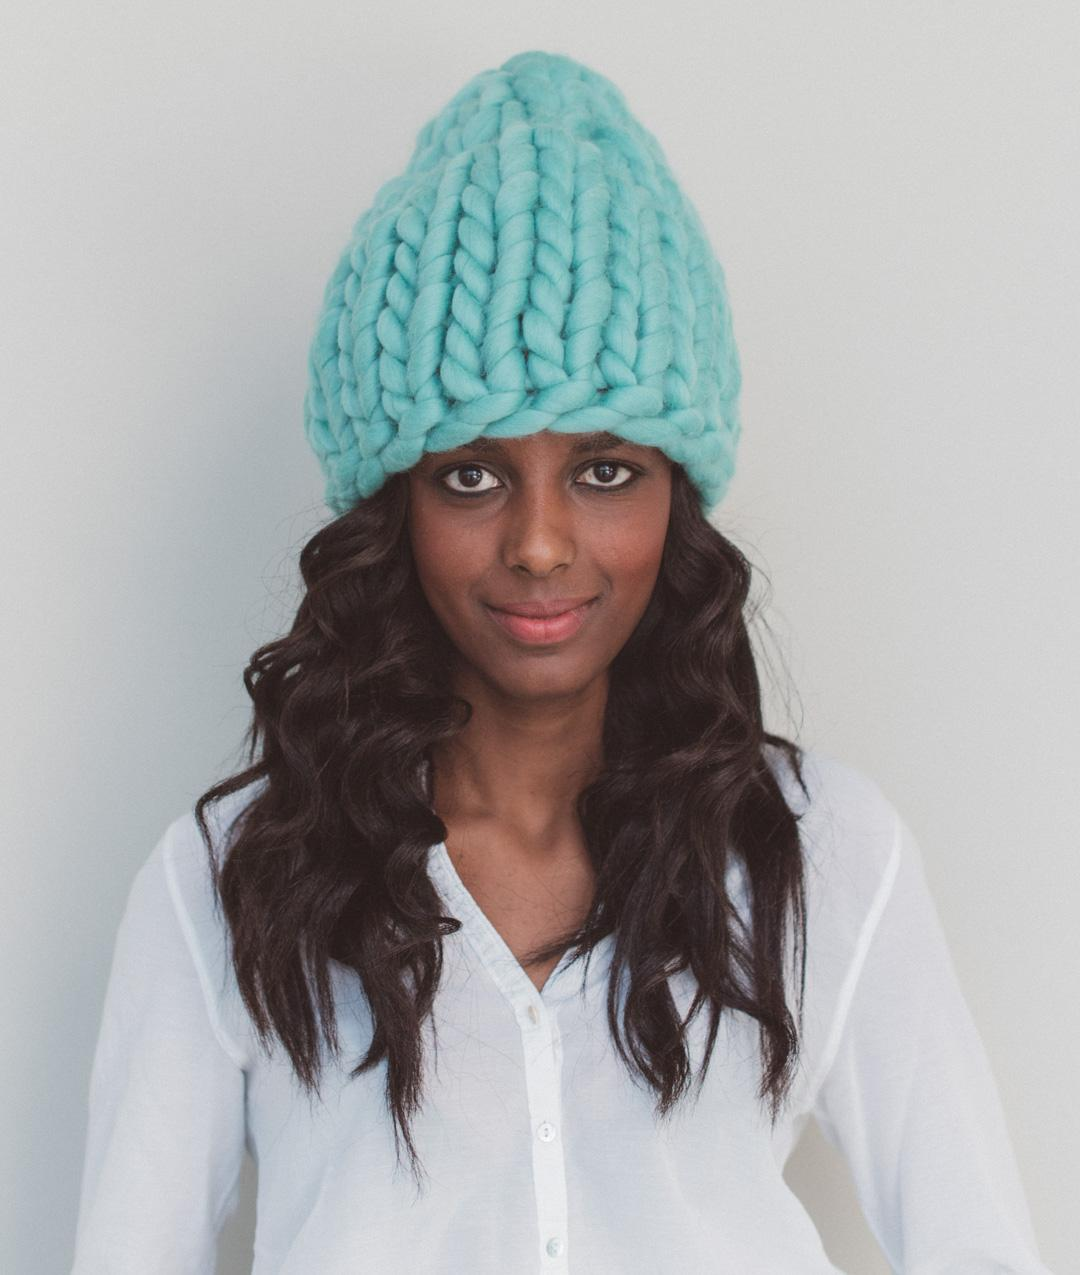 Giant Wool Knit Collection - ARM & GIANT KNITTING - The Hat - 1